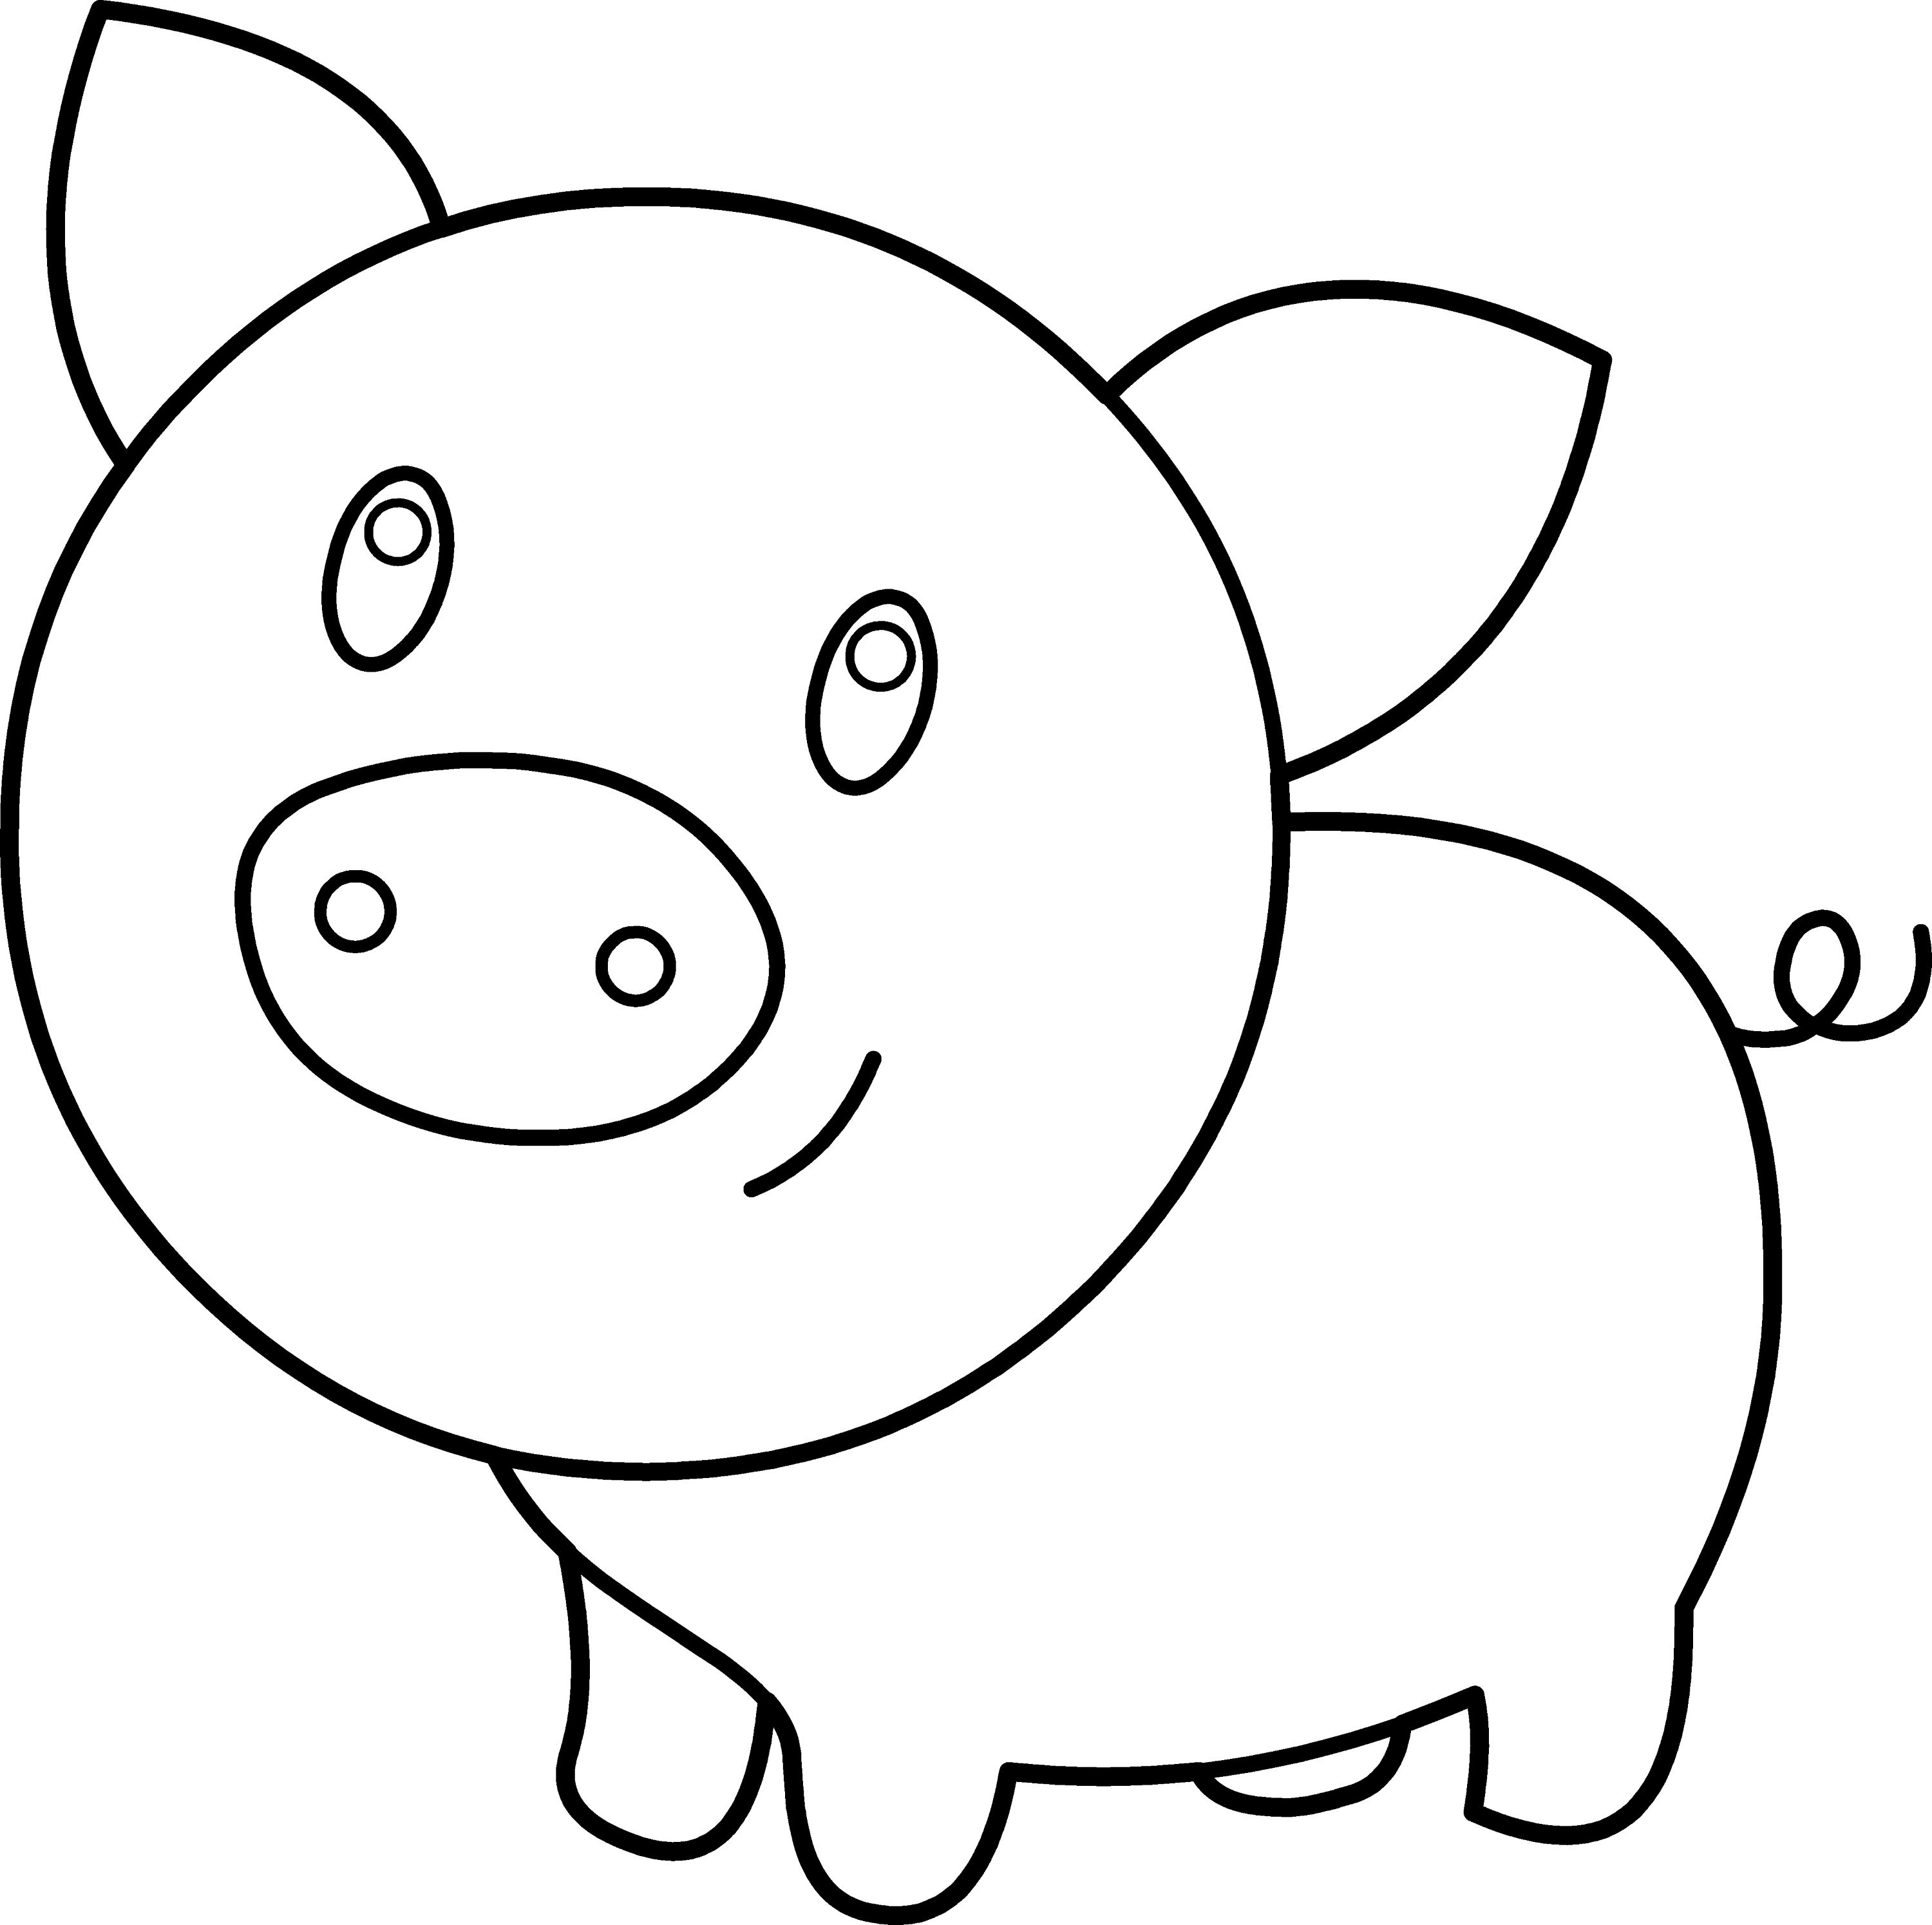 pictures of pigs to color pig coloring pages coloring pages to download and print color pictures pigs to of